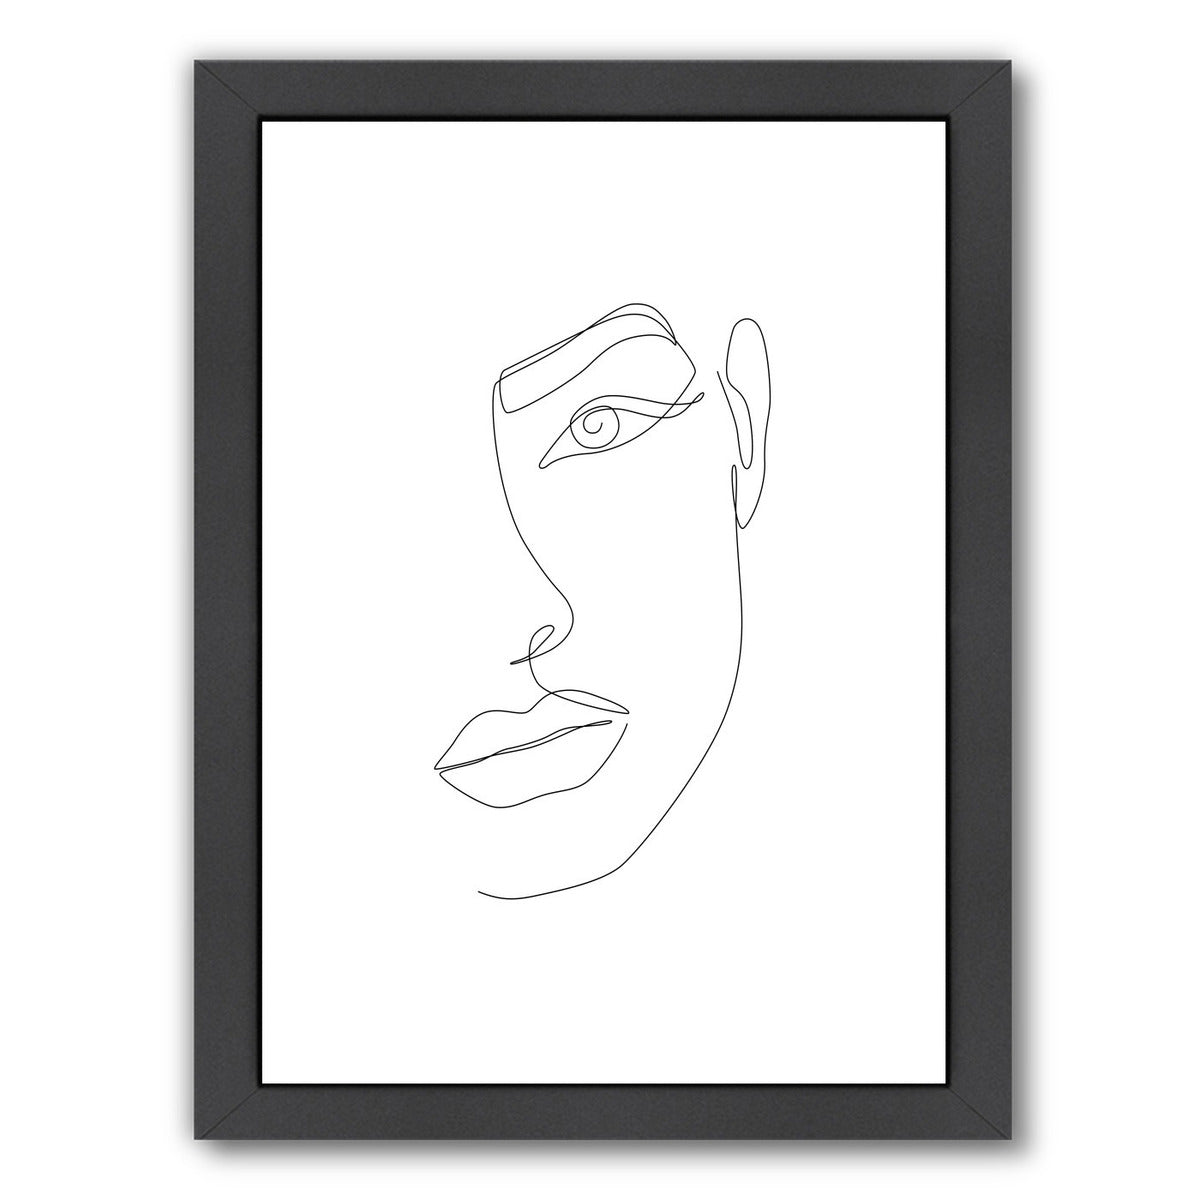 Eye Connection by Explicit Design Framed Print - Wall Art - Americanflat